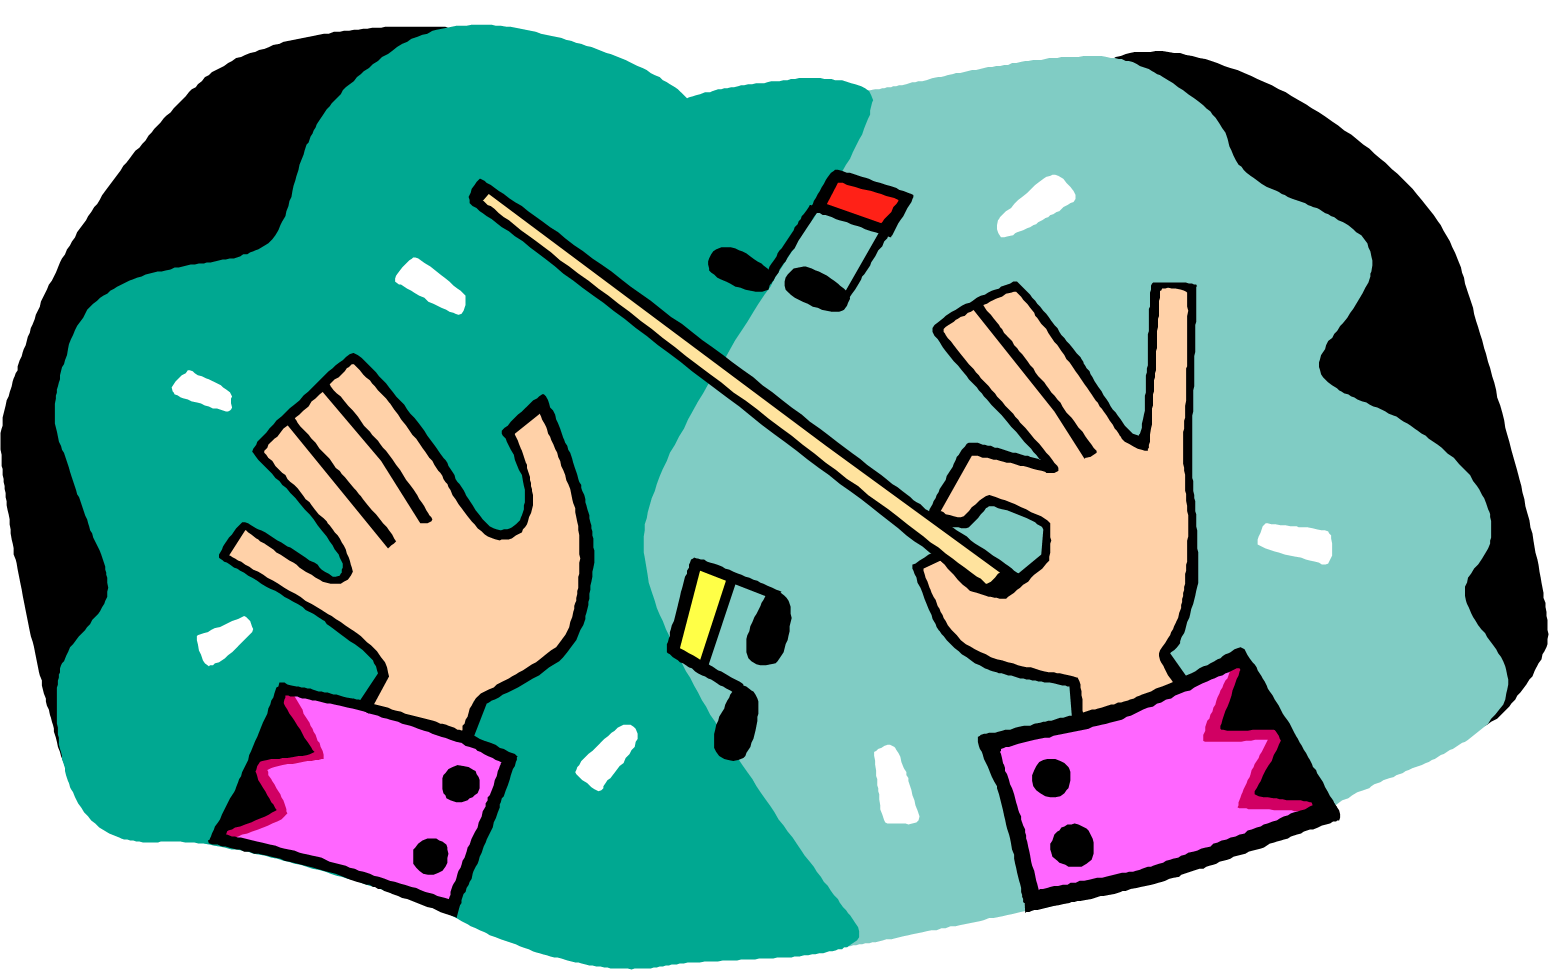 collection of choir. Orchestra clipart band church